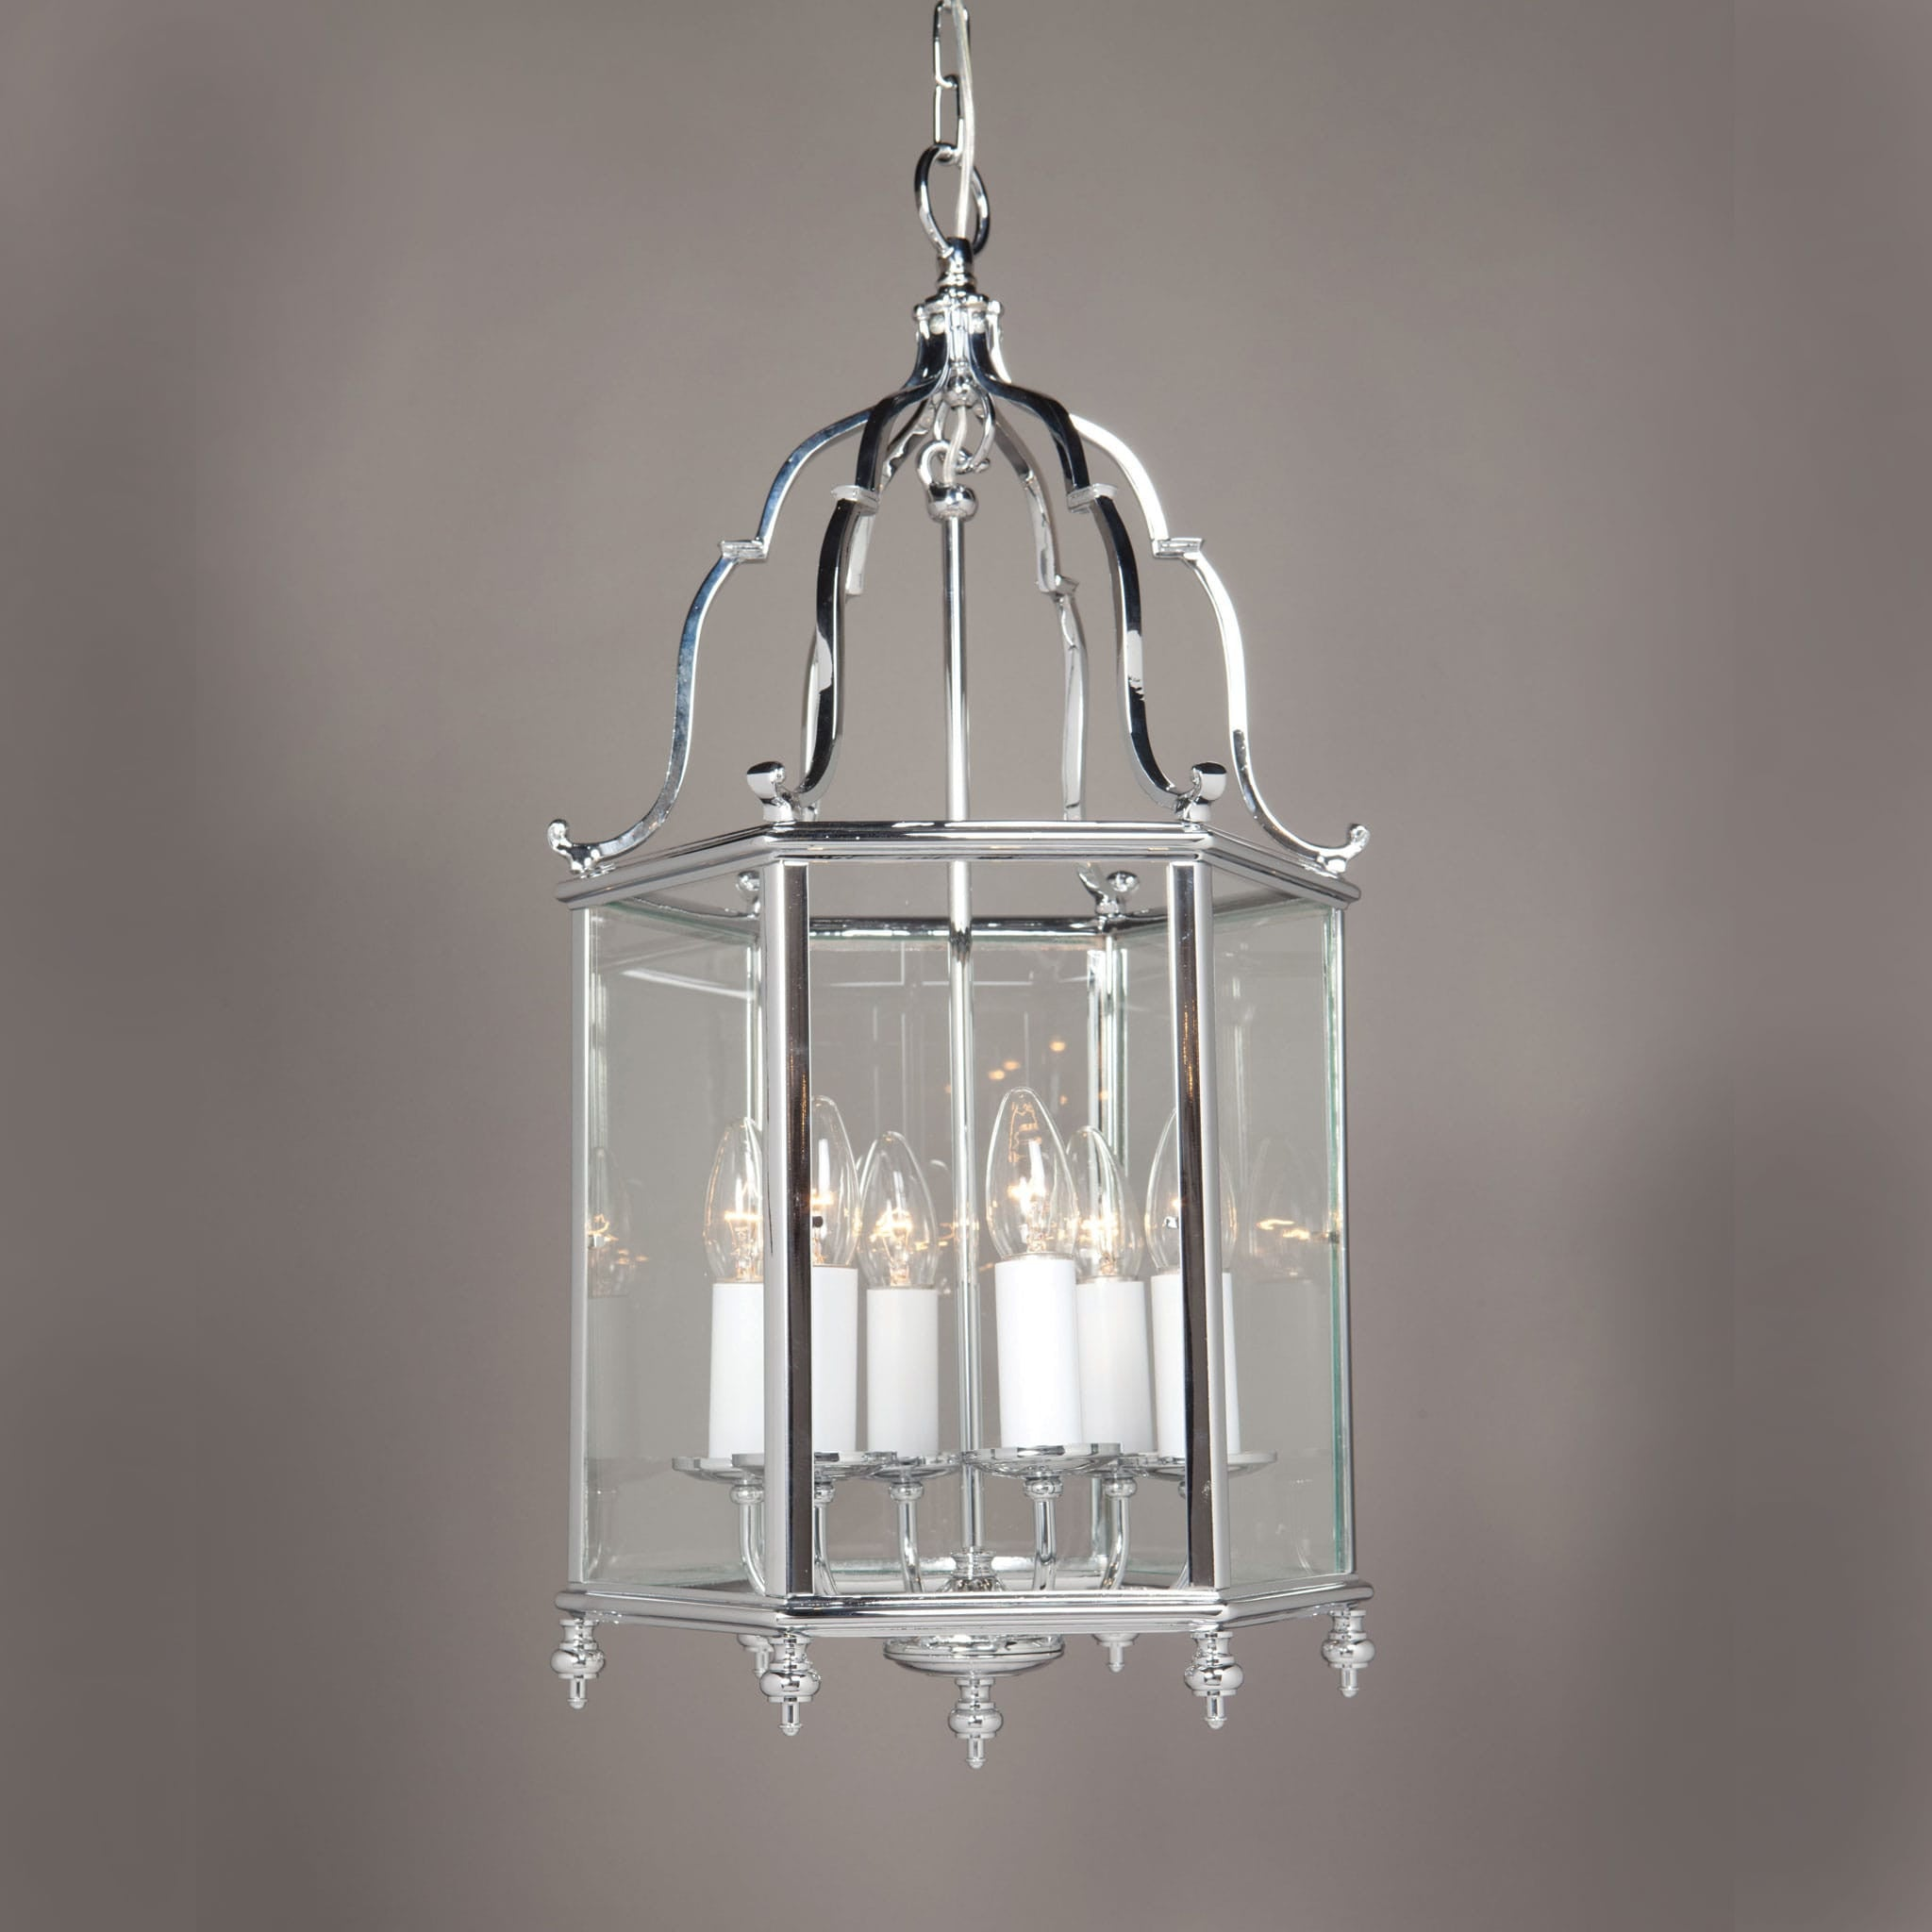 Impex belgravia 6 light chrome silver lantern pendant chandelier shack impex belgravia 6 light chrome silver lantern pendant smbbl00005ch arubaitofo Gallery